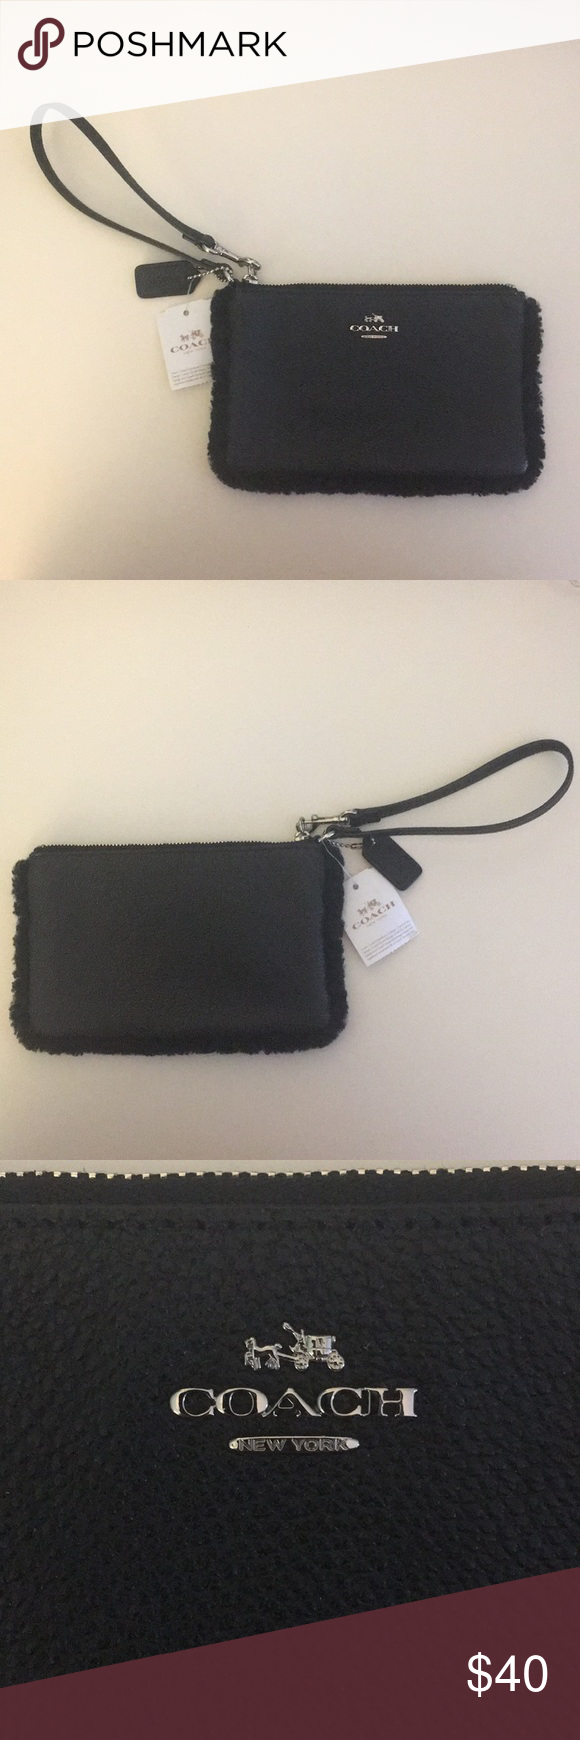 a6b407443fc Brand New Black Coach Wristlet Brand new Coach wristlet never used with  tags still attached!